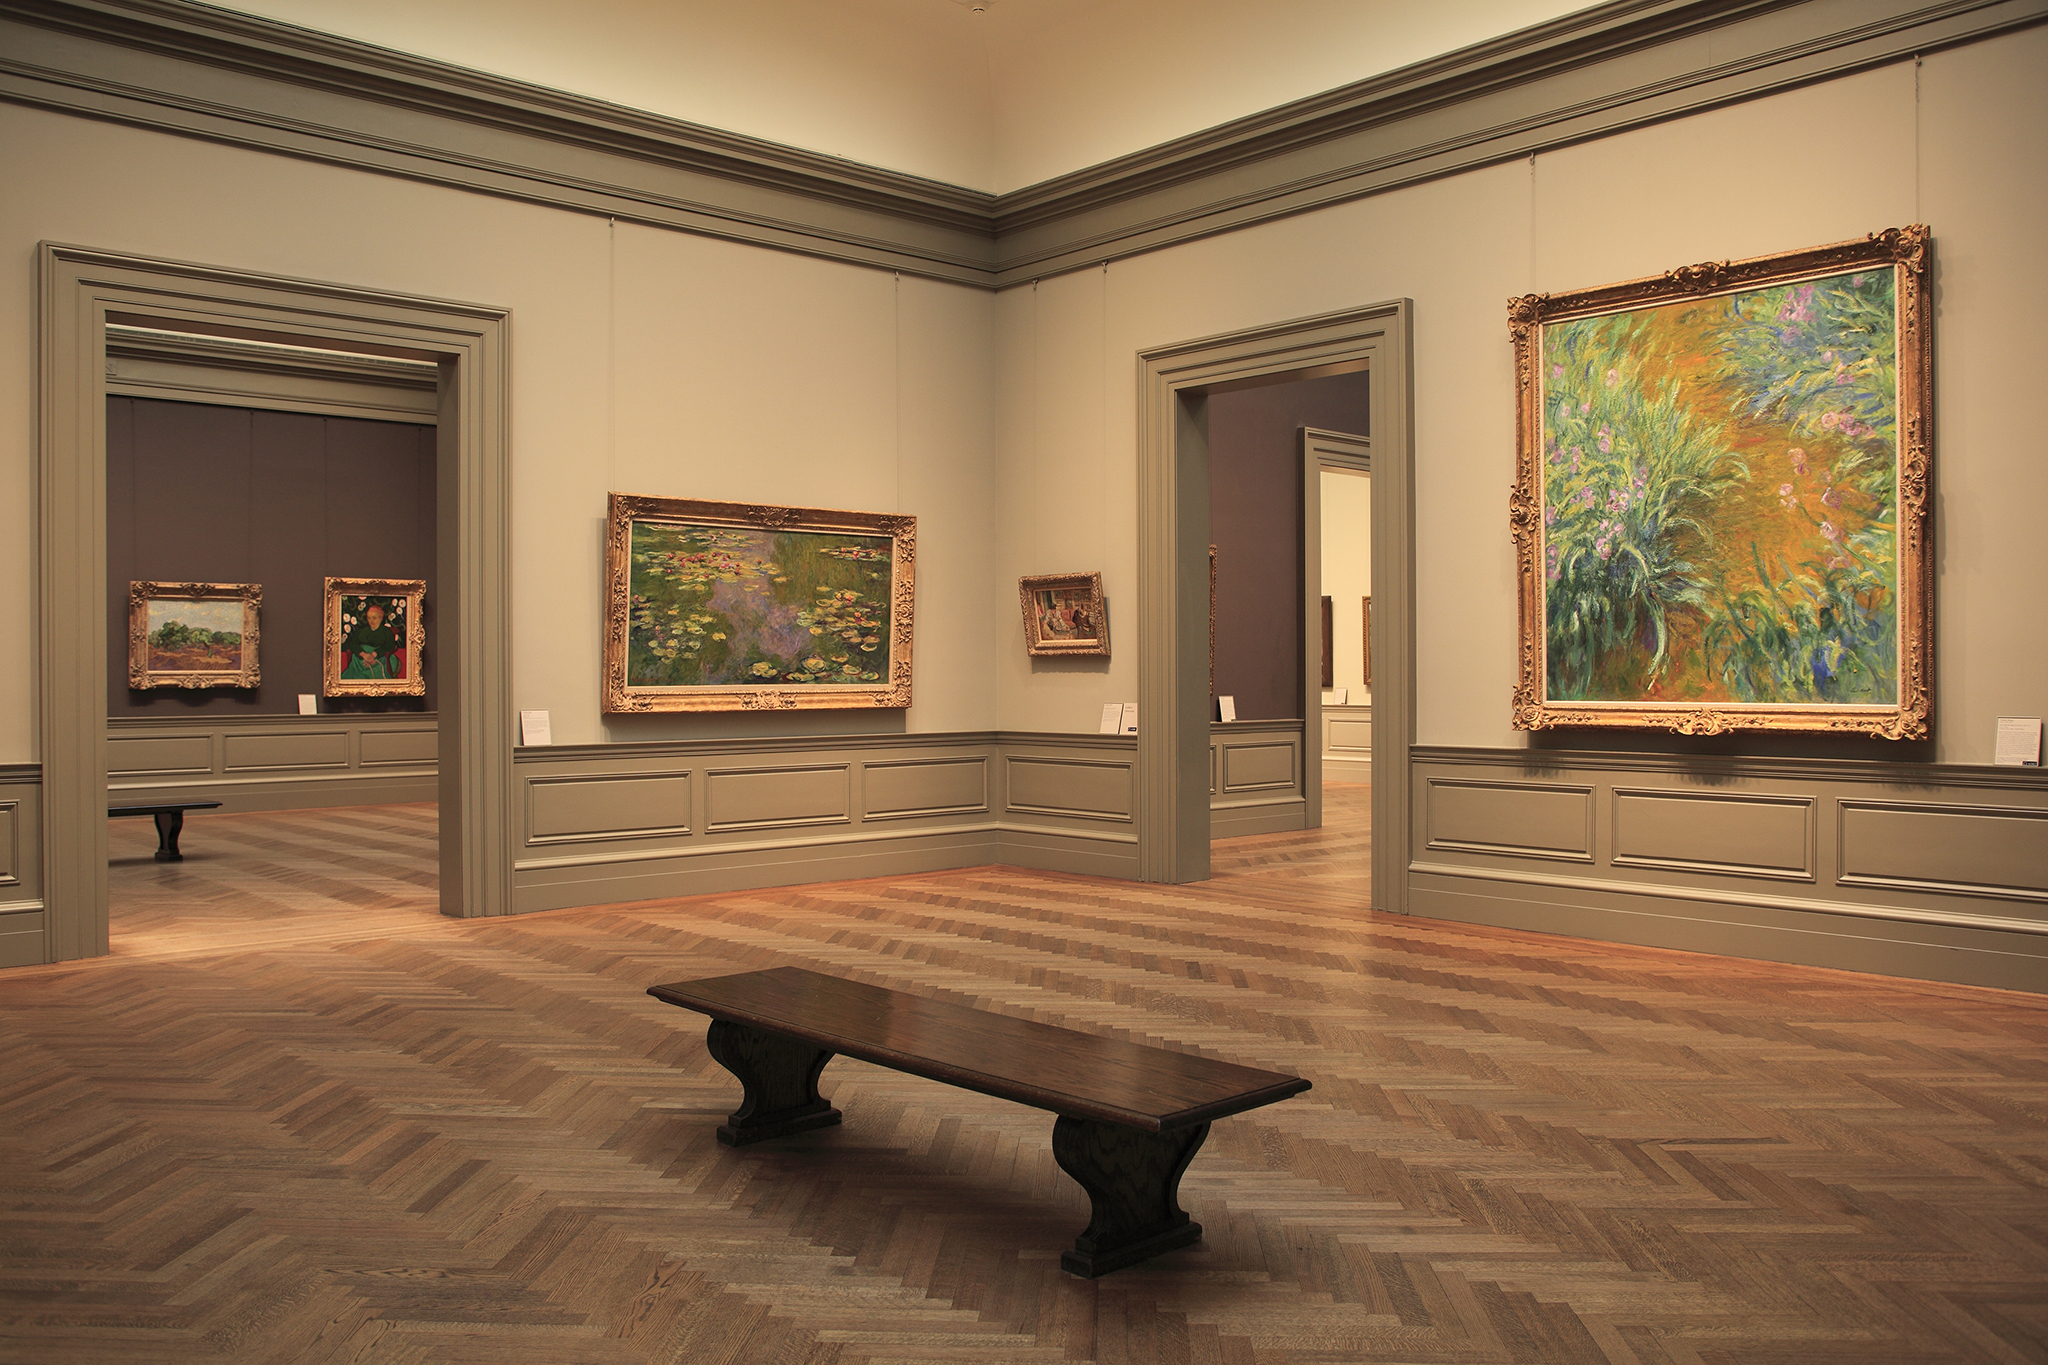 Best Art Museums In America Including MoMA - How many museums in usa